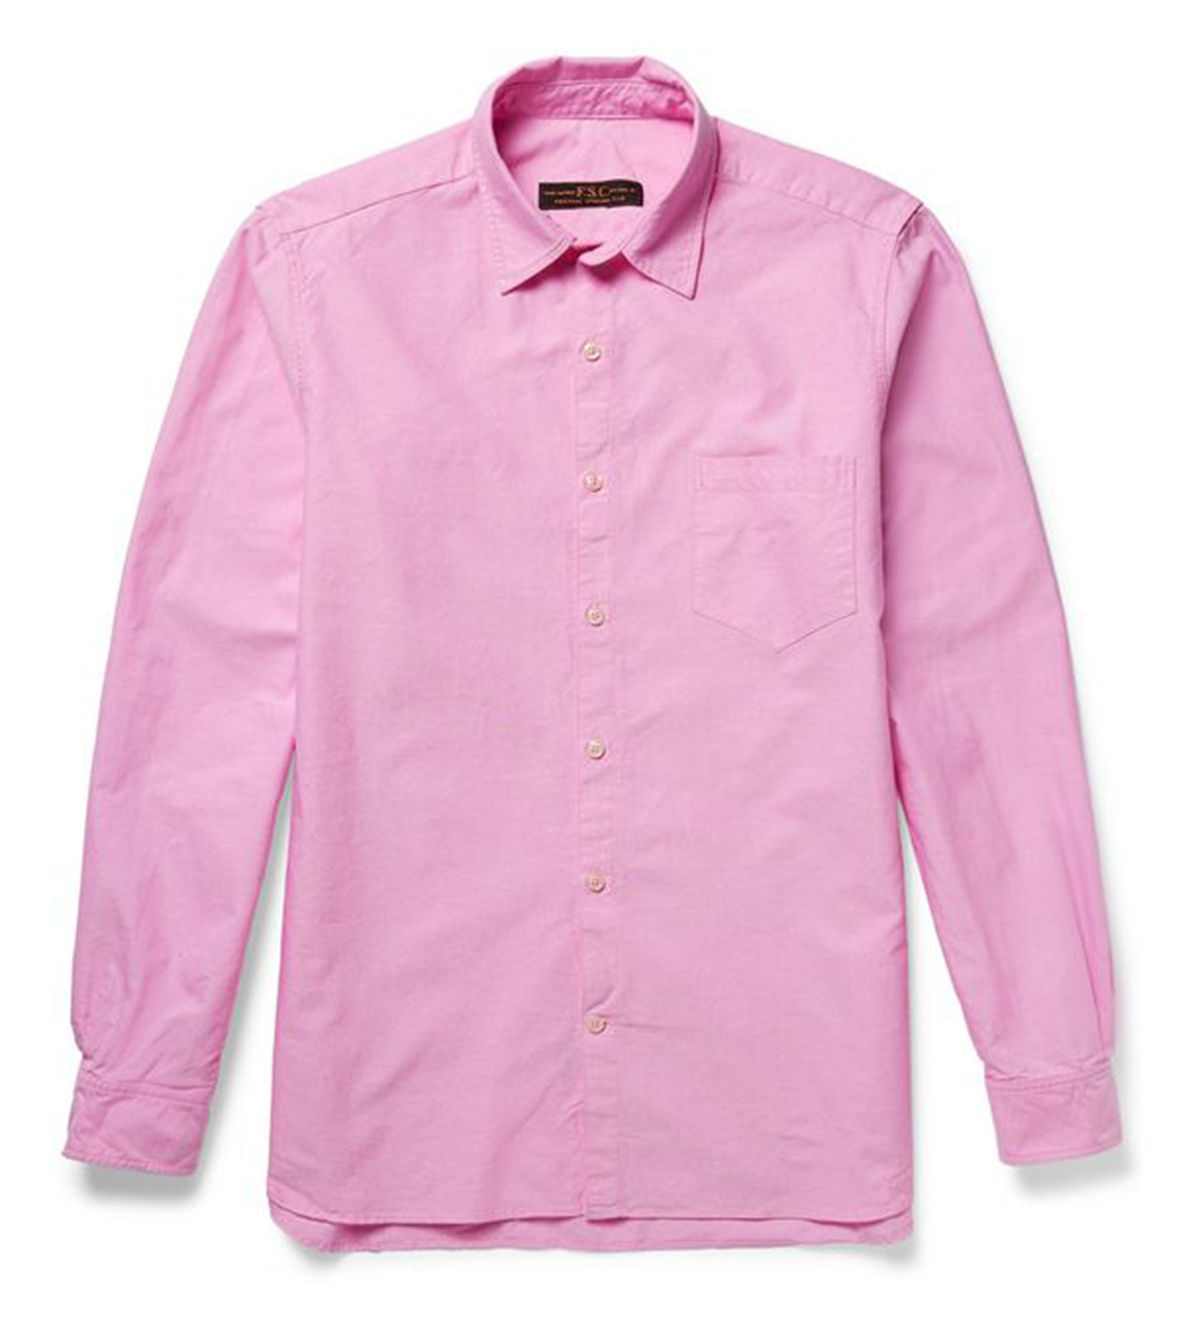 Primary image for NEW FREEMANS SPORTING CLUB FSC USA LONG SLEEVE PINK COTTON TWILL SHIRT M $210